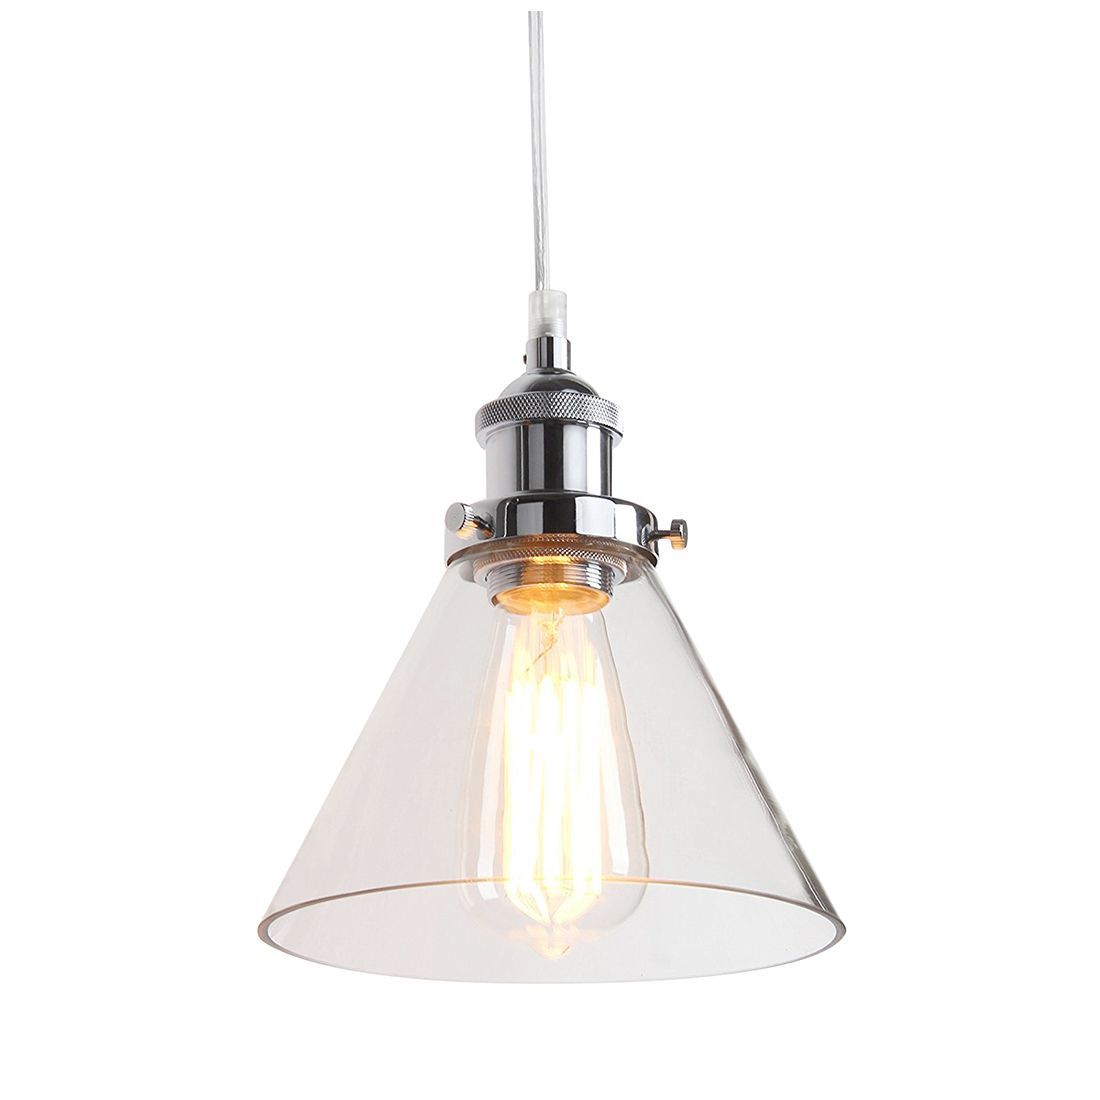 Industrial Vintage Stainless Steel Head Edison Pendant Light Iron Body Glass Shade Loft Coffee Bar Kitchen Hanging Pendant Lamp vintage iron stainless steel pendant lamp modern silver stainless steel pendant light free shipping